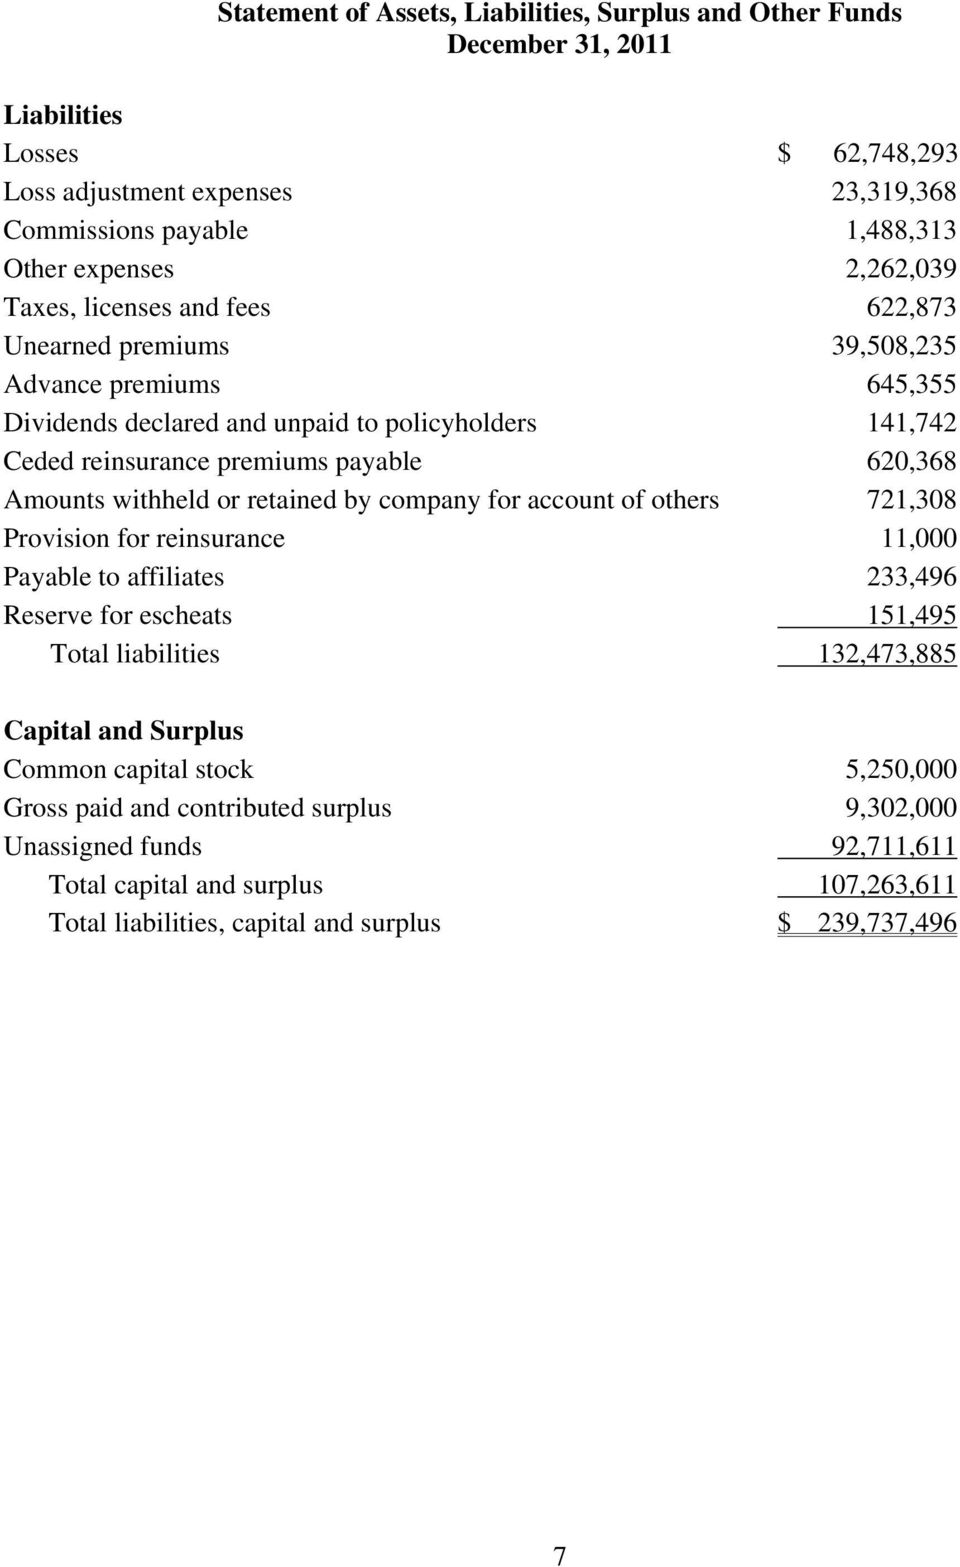 Amounts withheld or retained by company for account of others 721,308 Provision for reinsurance 11,000 Payable to affiliates 233,496 Reserve for escheats 151,495 Total liabilities 132,473,885